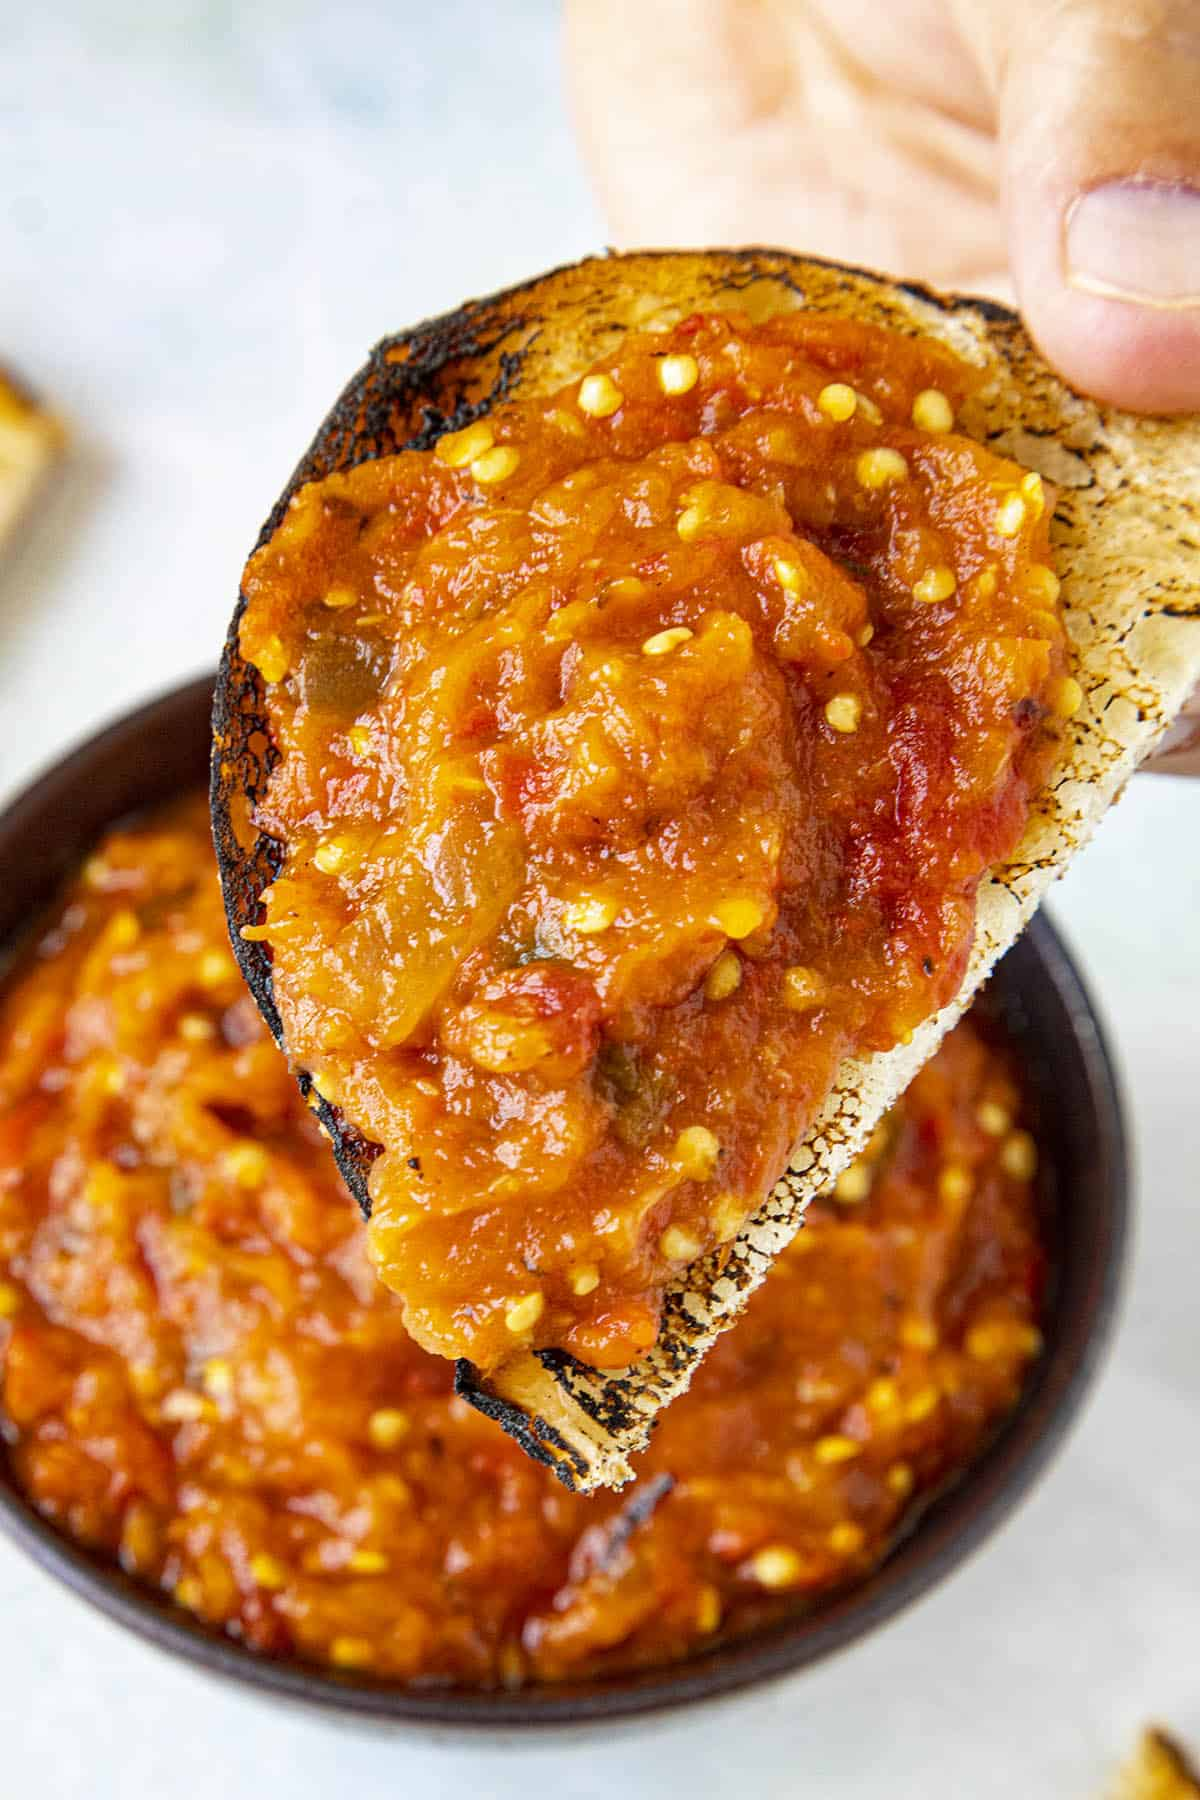 Thick and delicious Zacusca (roasted red pepper and eggplant spread) on a charred piece of bread